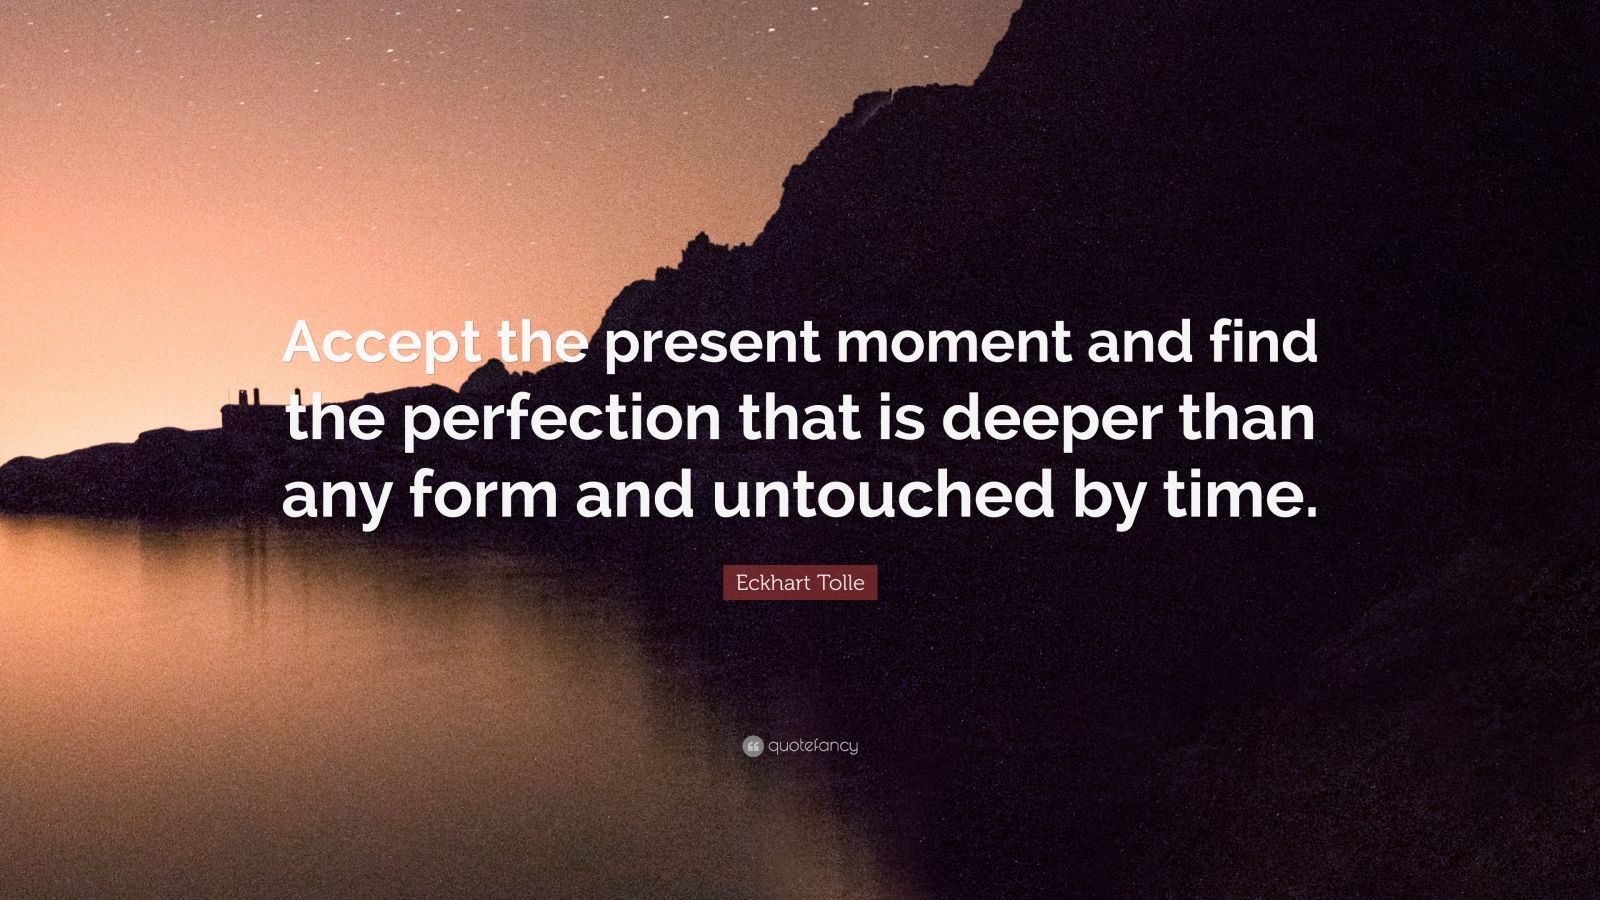 """Eckhart Tolle Quote: """"Accept the present moment and find the perfection that is deeper than any form and untouched by time."""""""